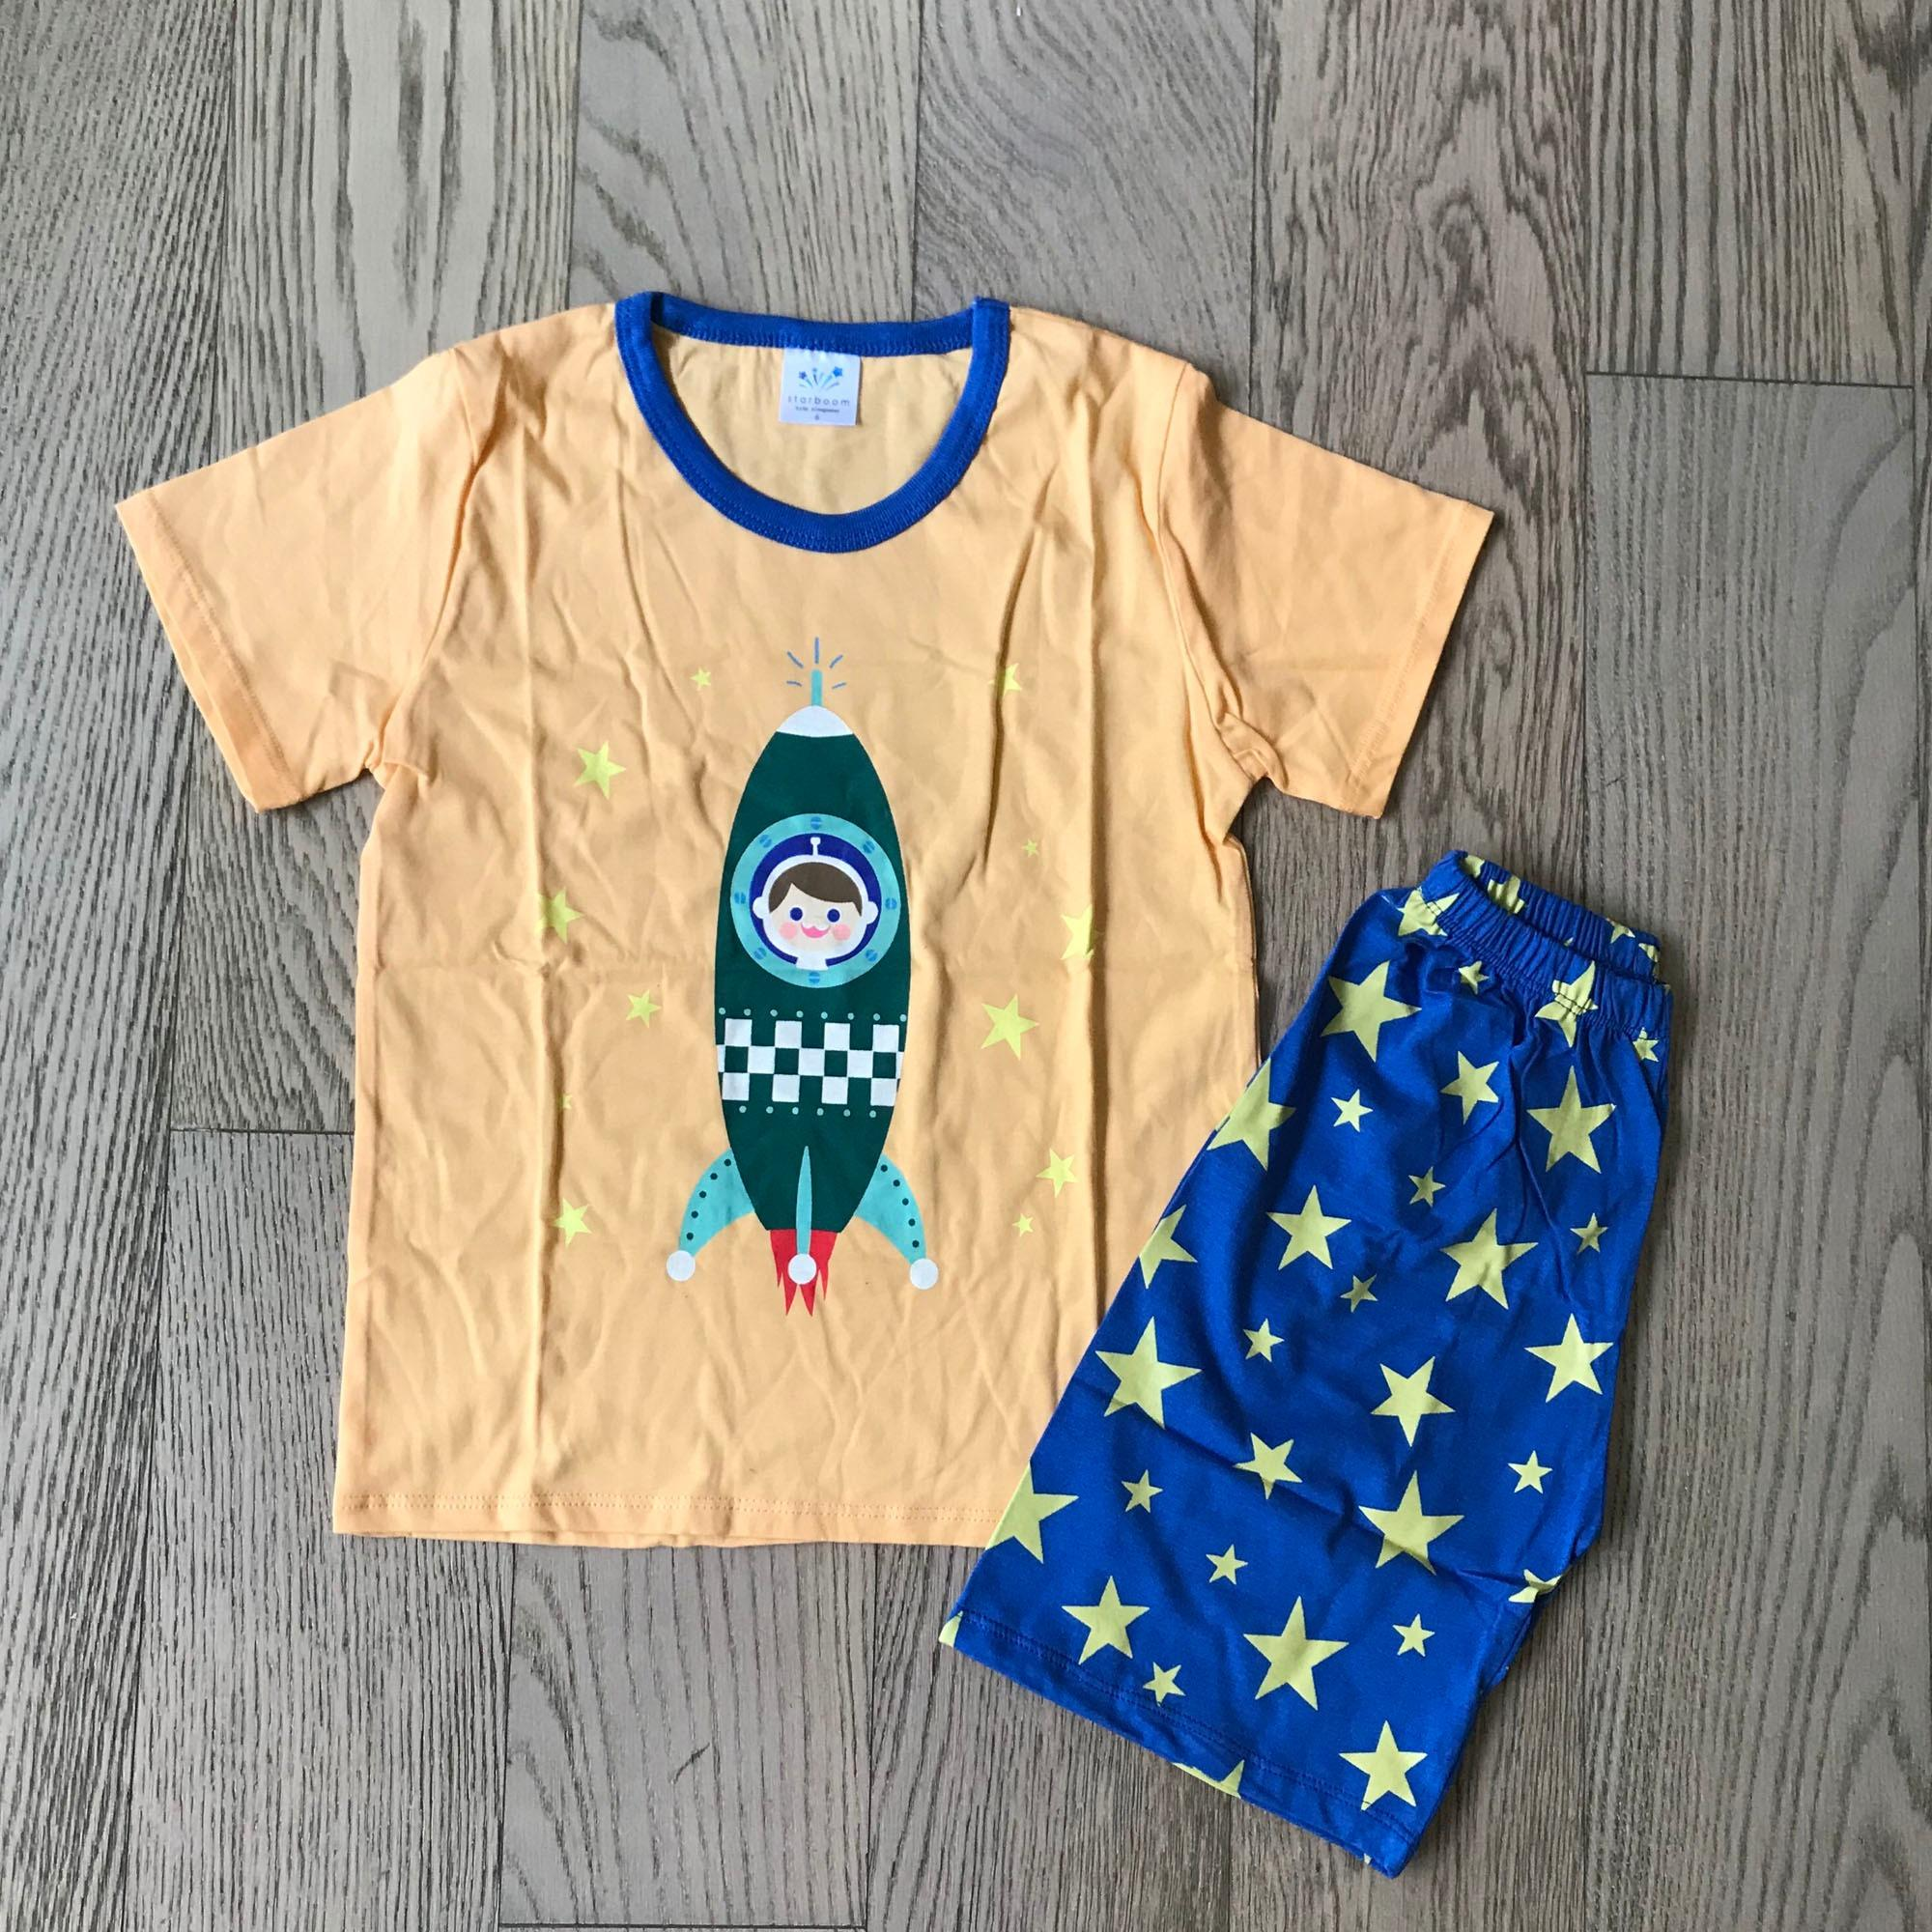 Sale Children Boy G*Rl Short Sleeve Starboom Rocket Set Starboom On Singapore